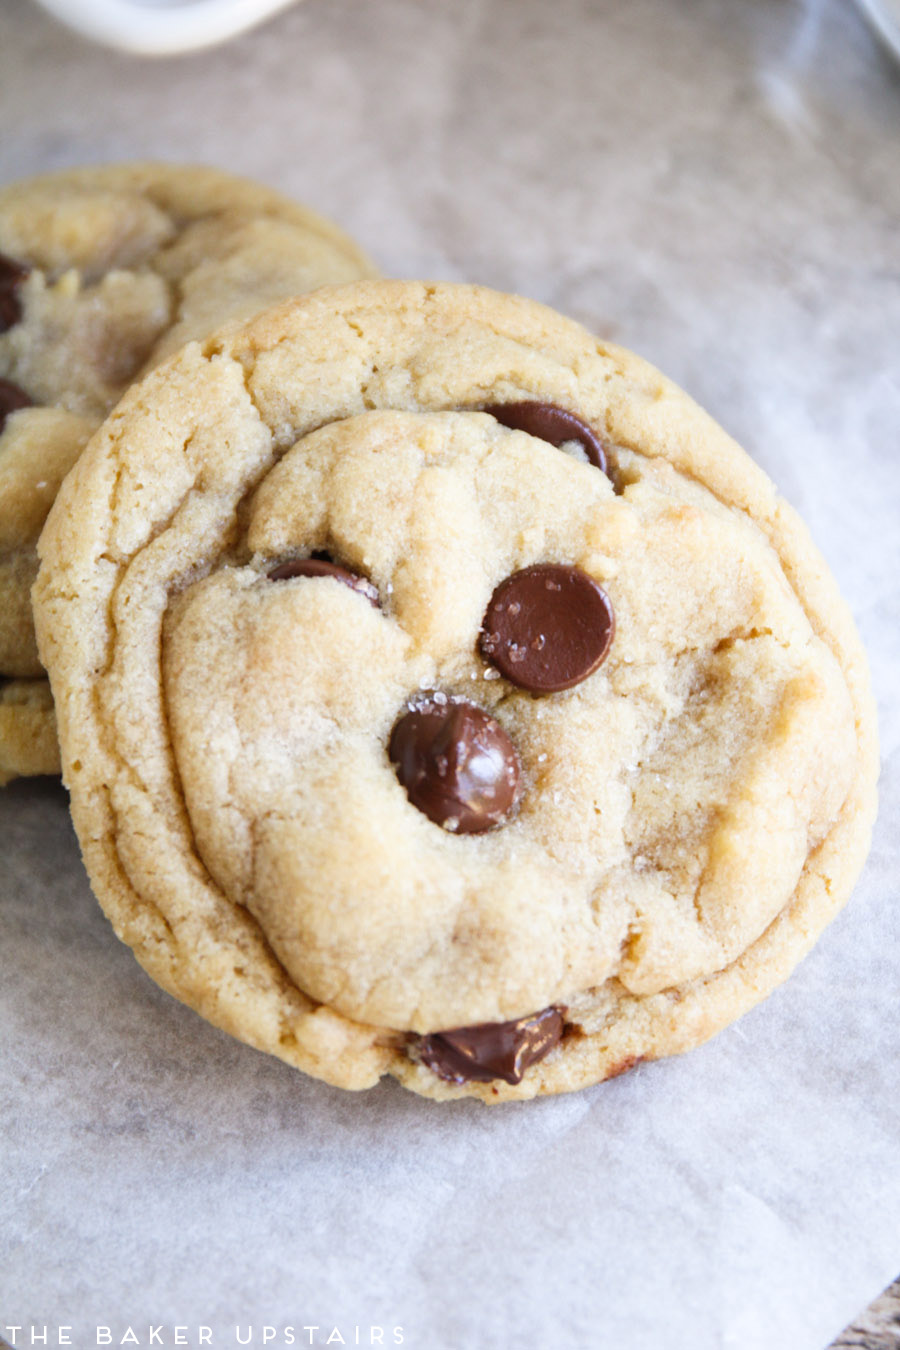 These millionaire chocolate chip cookies are so rich and indulgent, and over the top delicious!